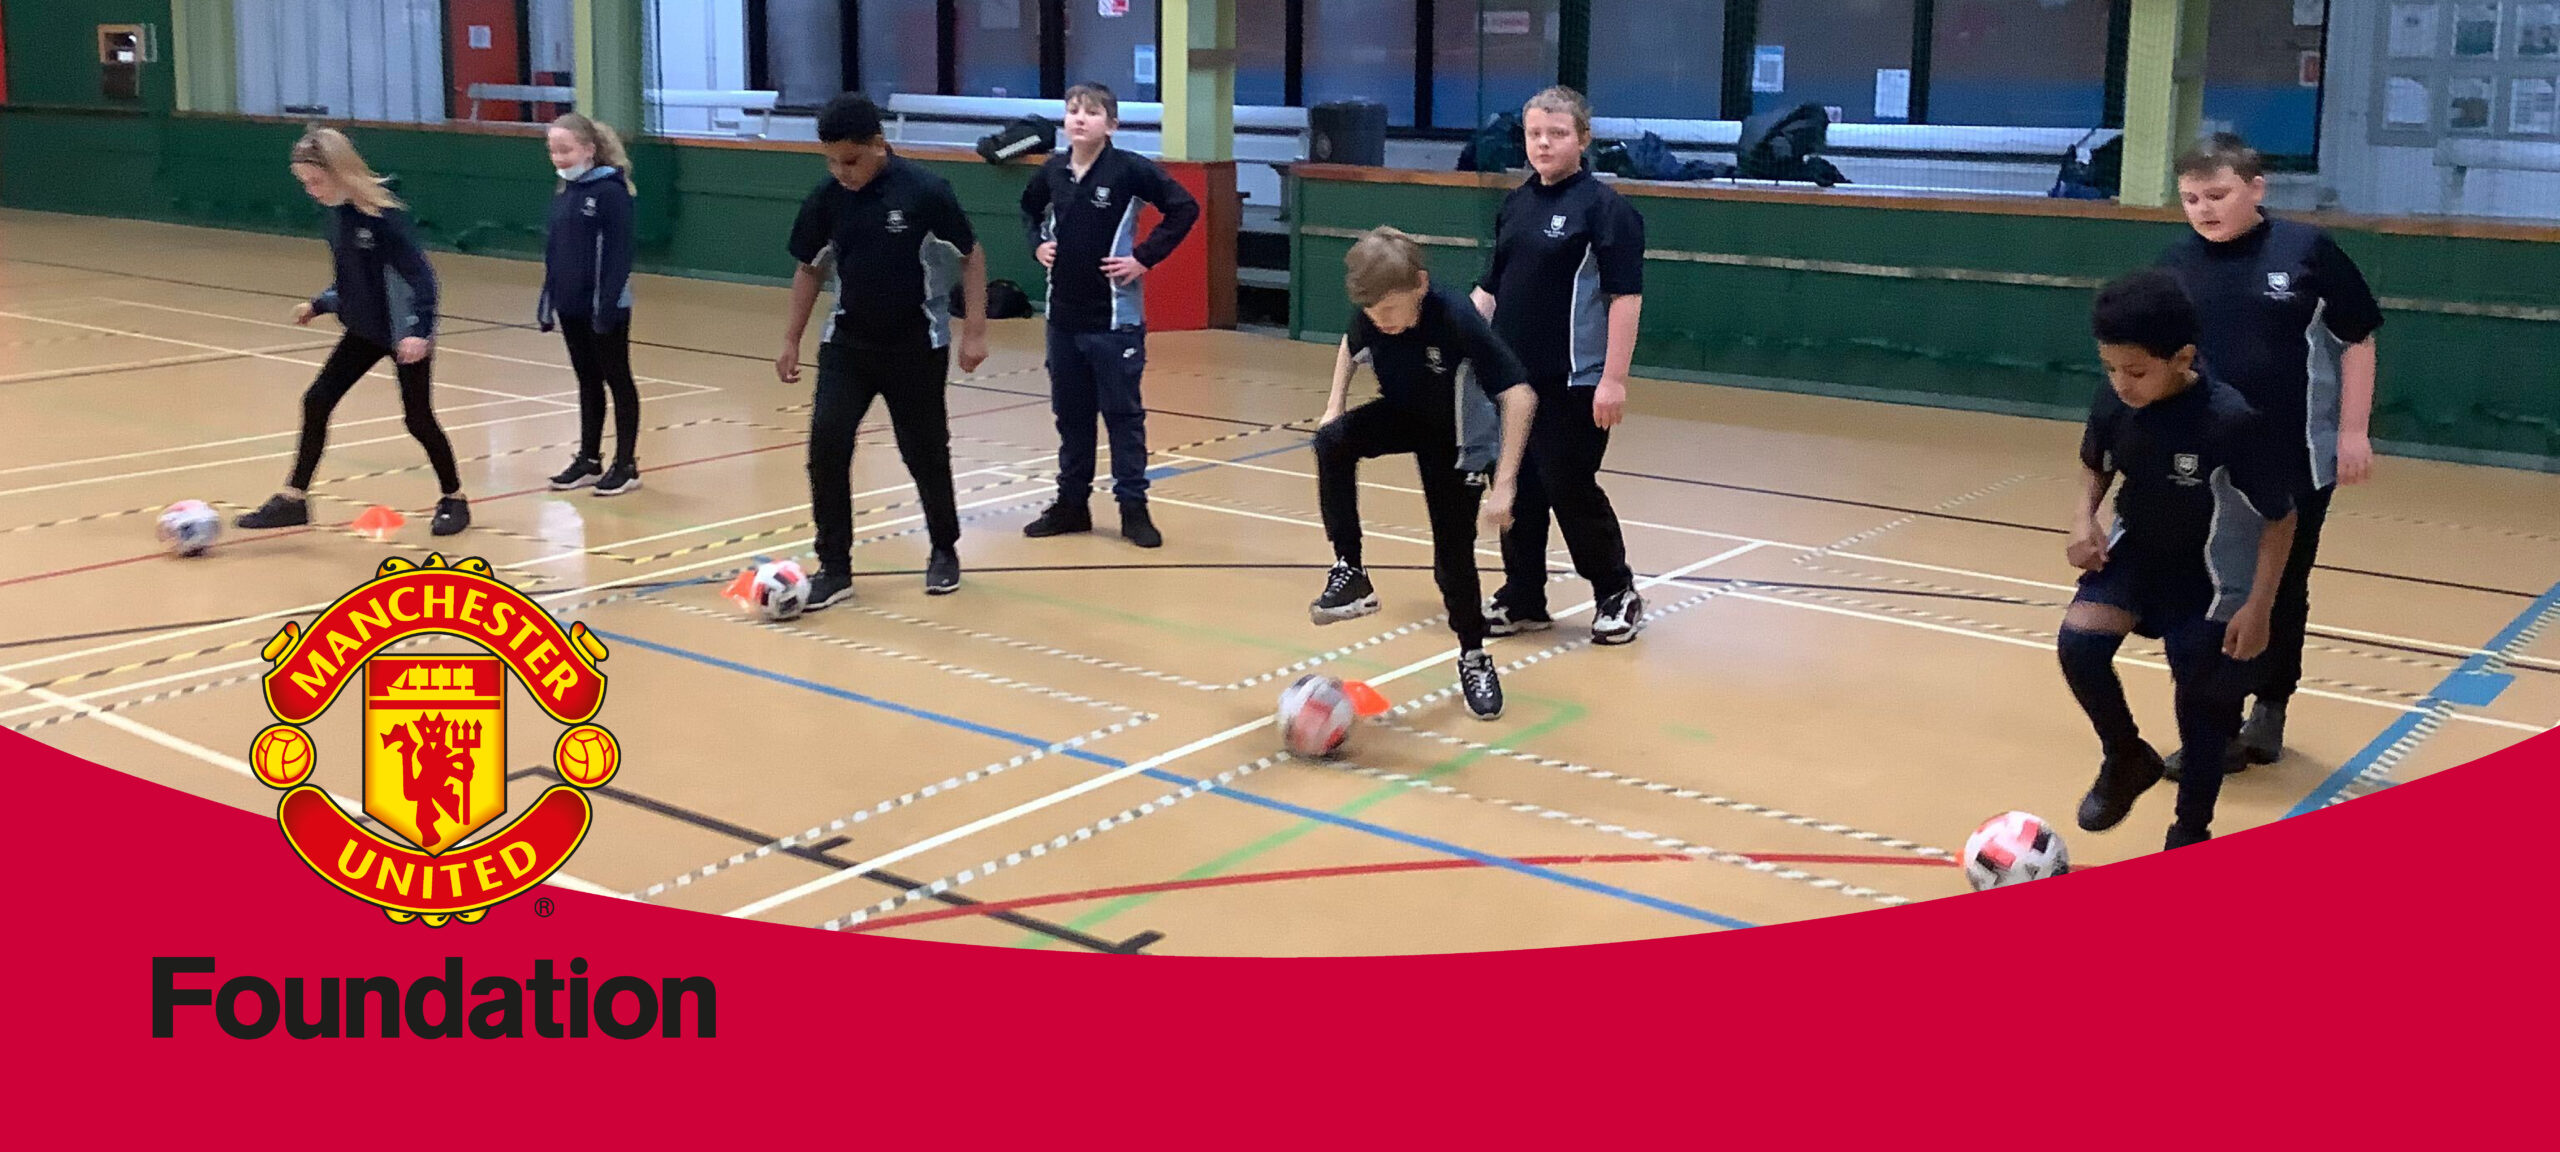 Unified Football with Manchester United Foundation